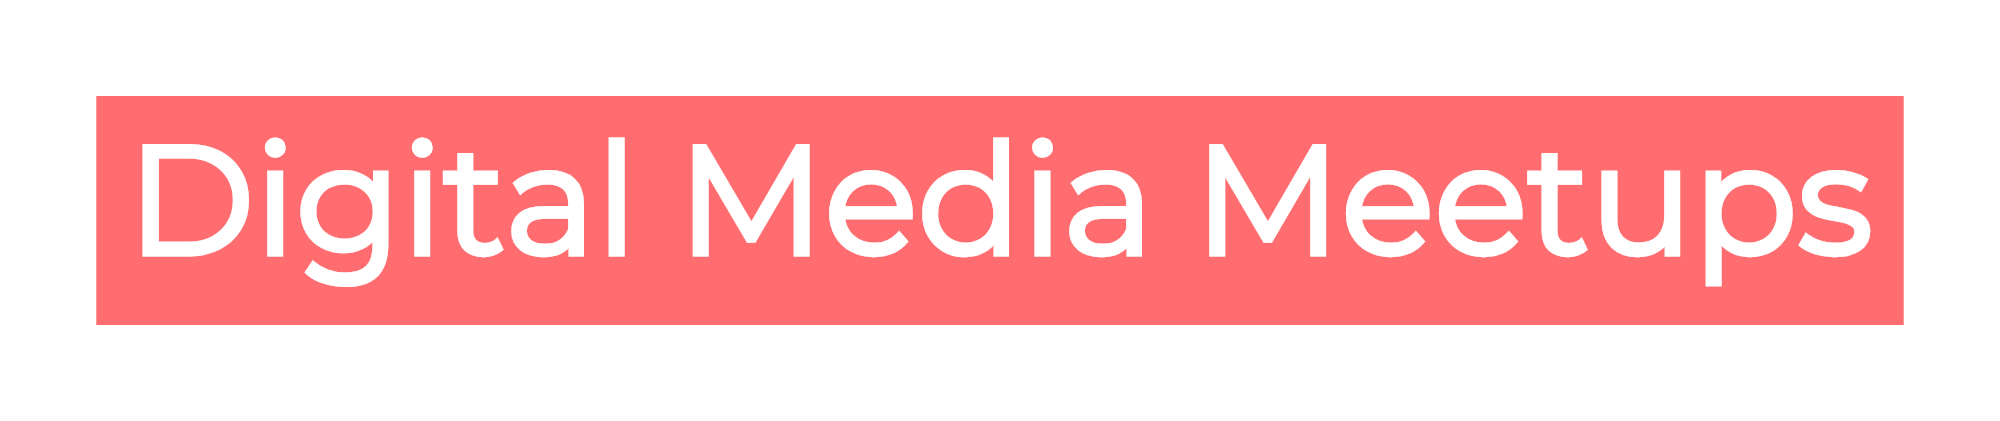 Digital Media Meetups-logo.png